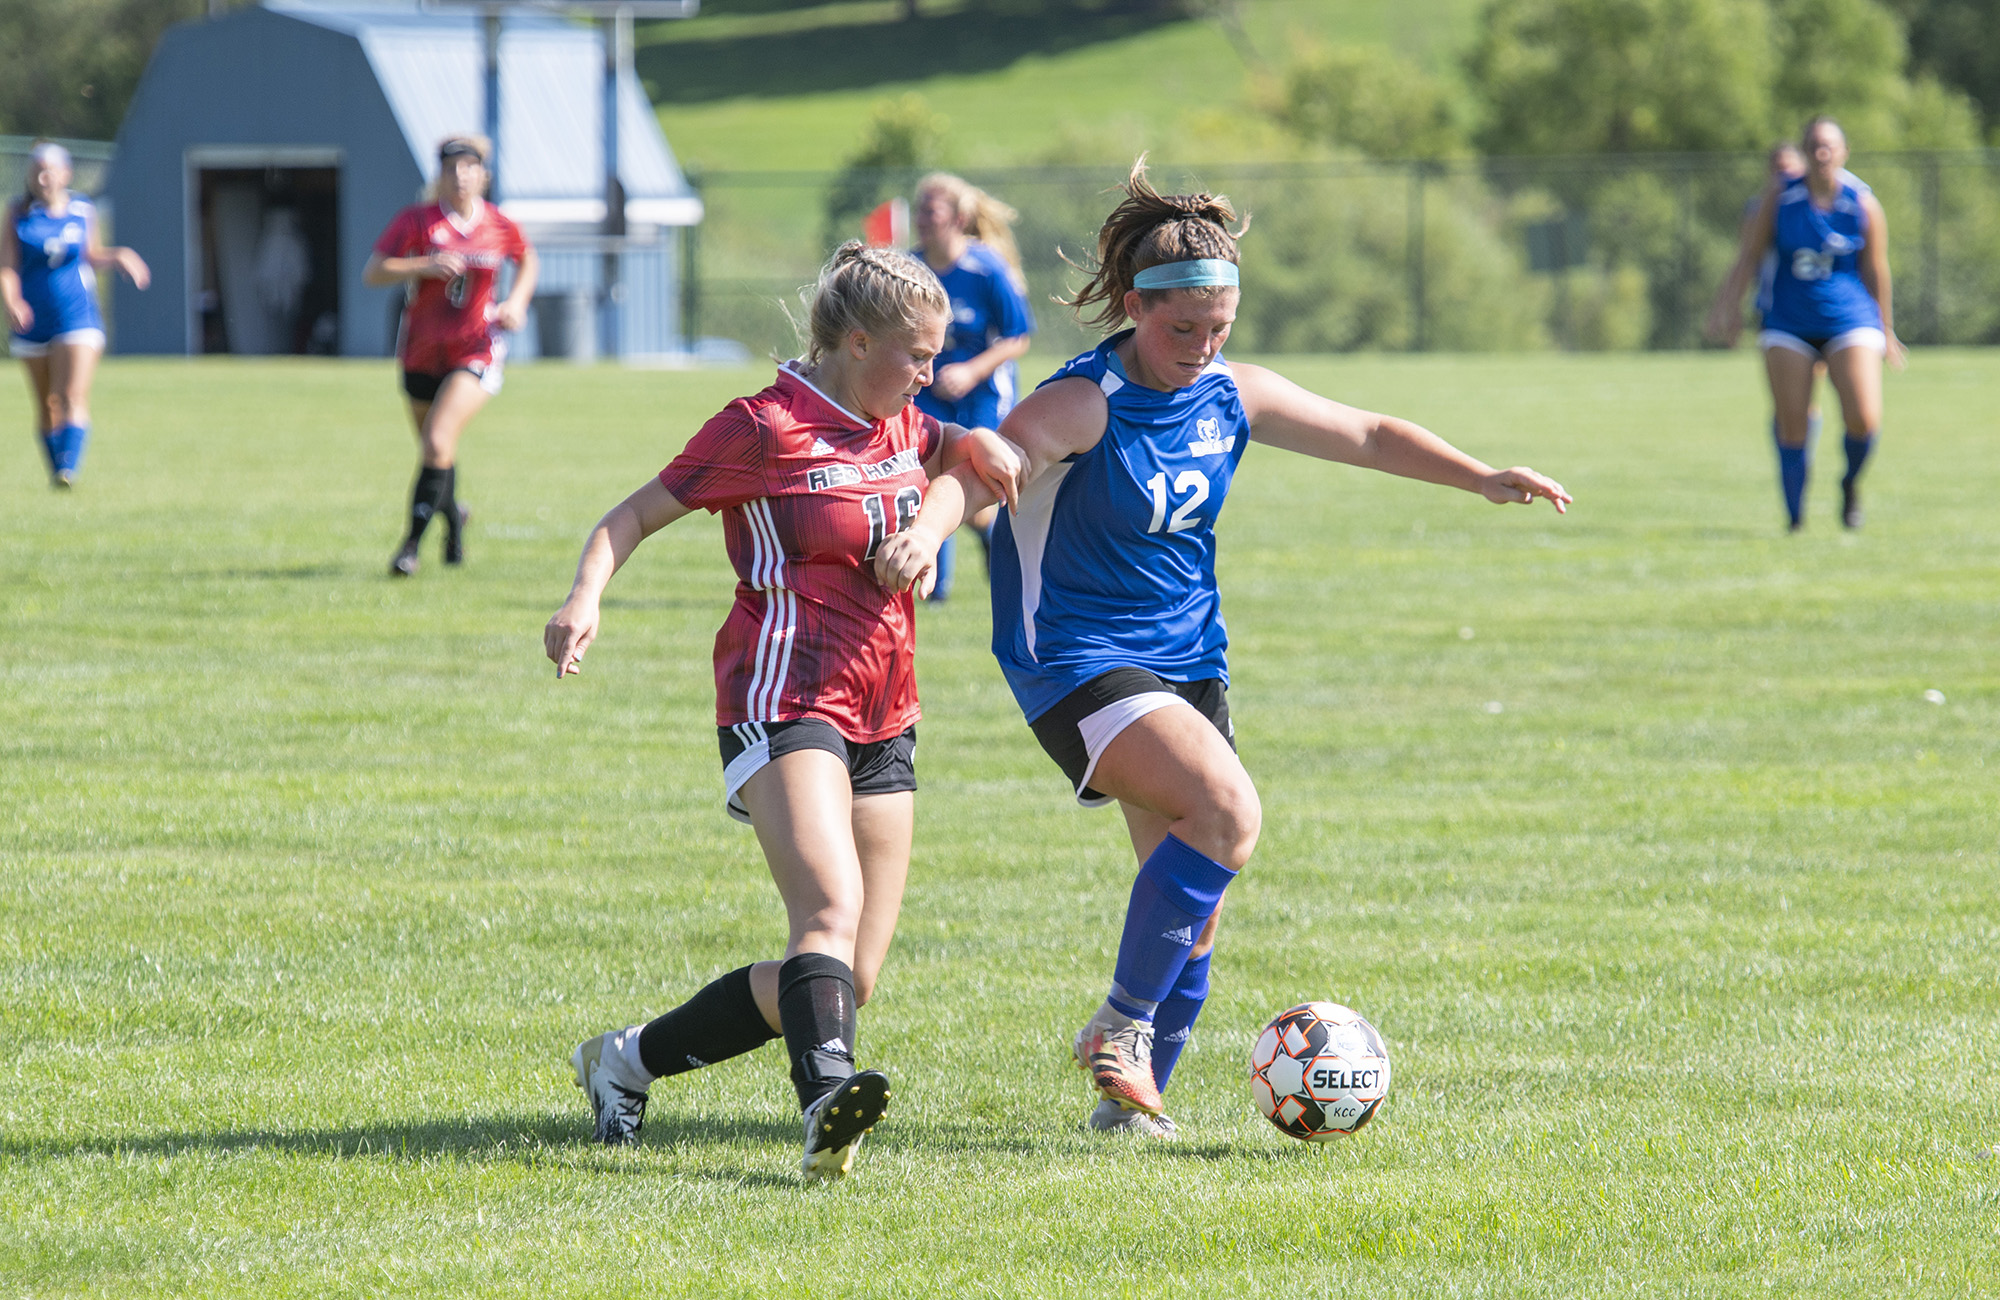 Women's soccer player Chloe Leugers competes during a game.